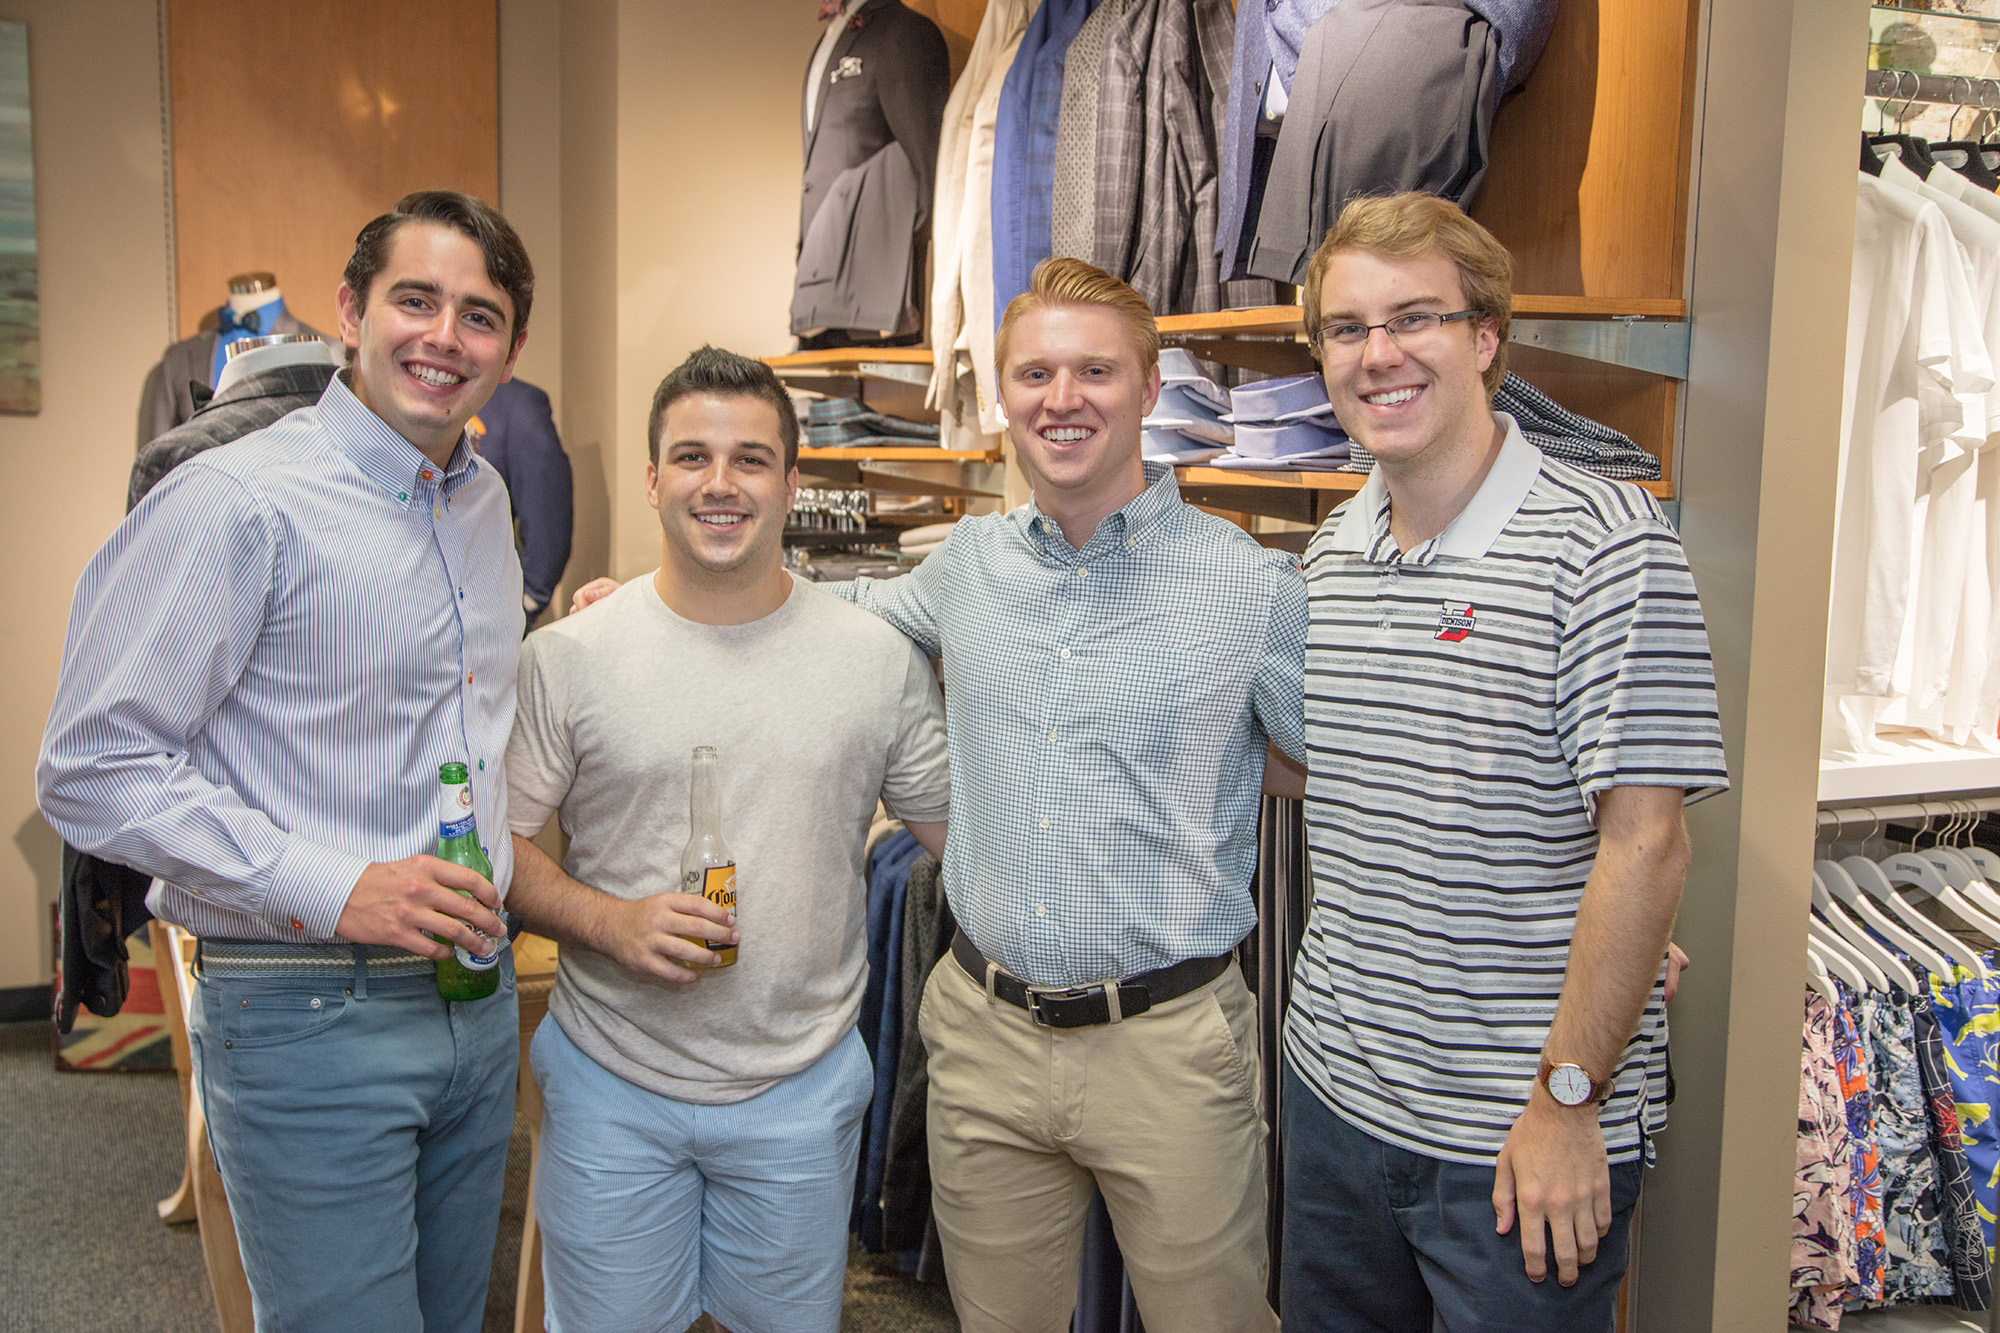 Blaines JDRF event photos 07-22-17 (1 of 1)-205.jpg